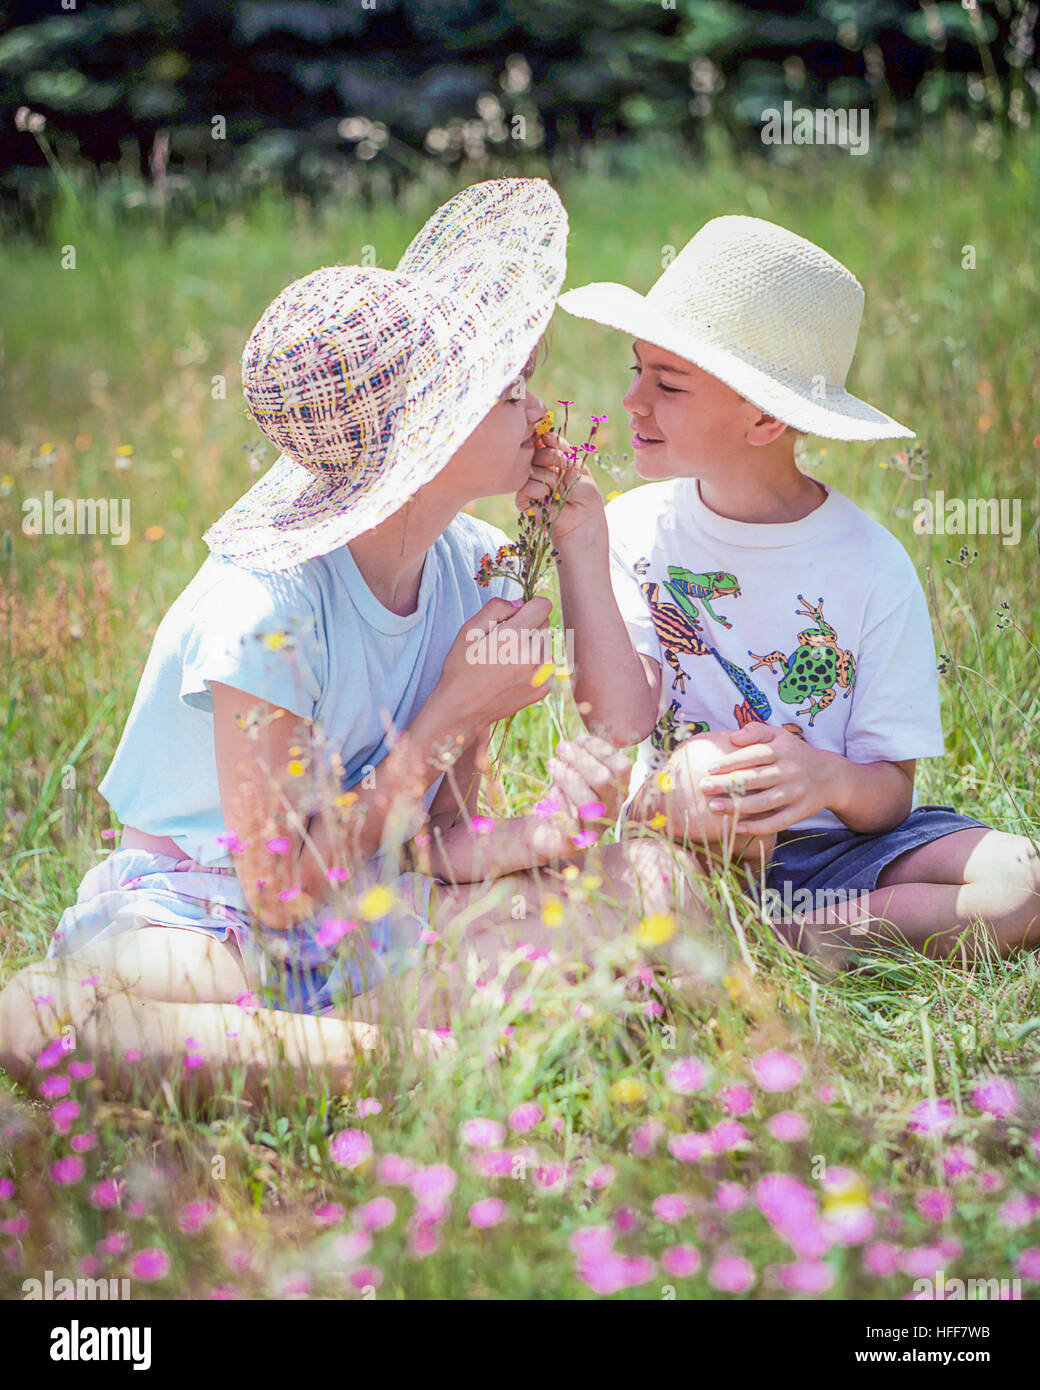 Happy children, a boy and girl, in straw hats sit in a field smelling wildflowers. - Stock Image